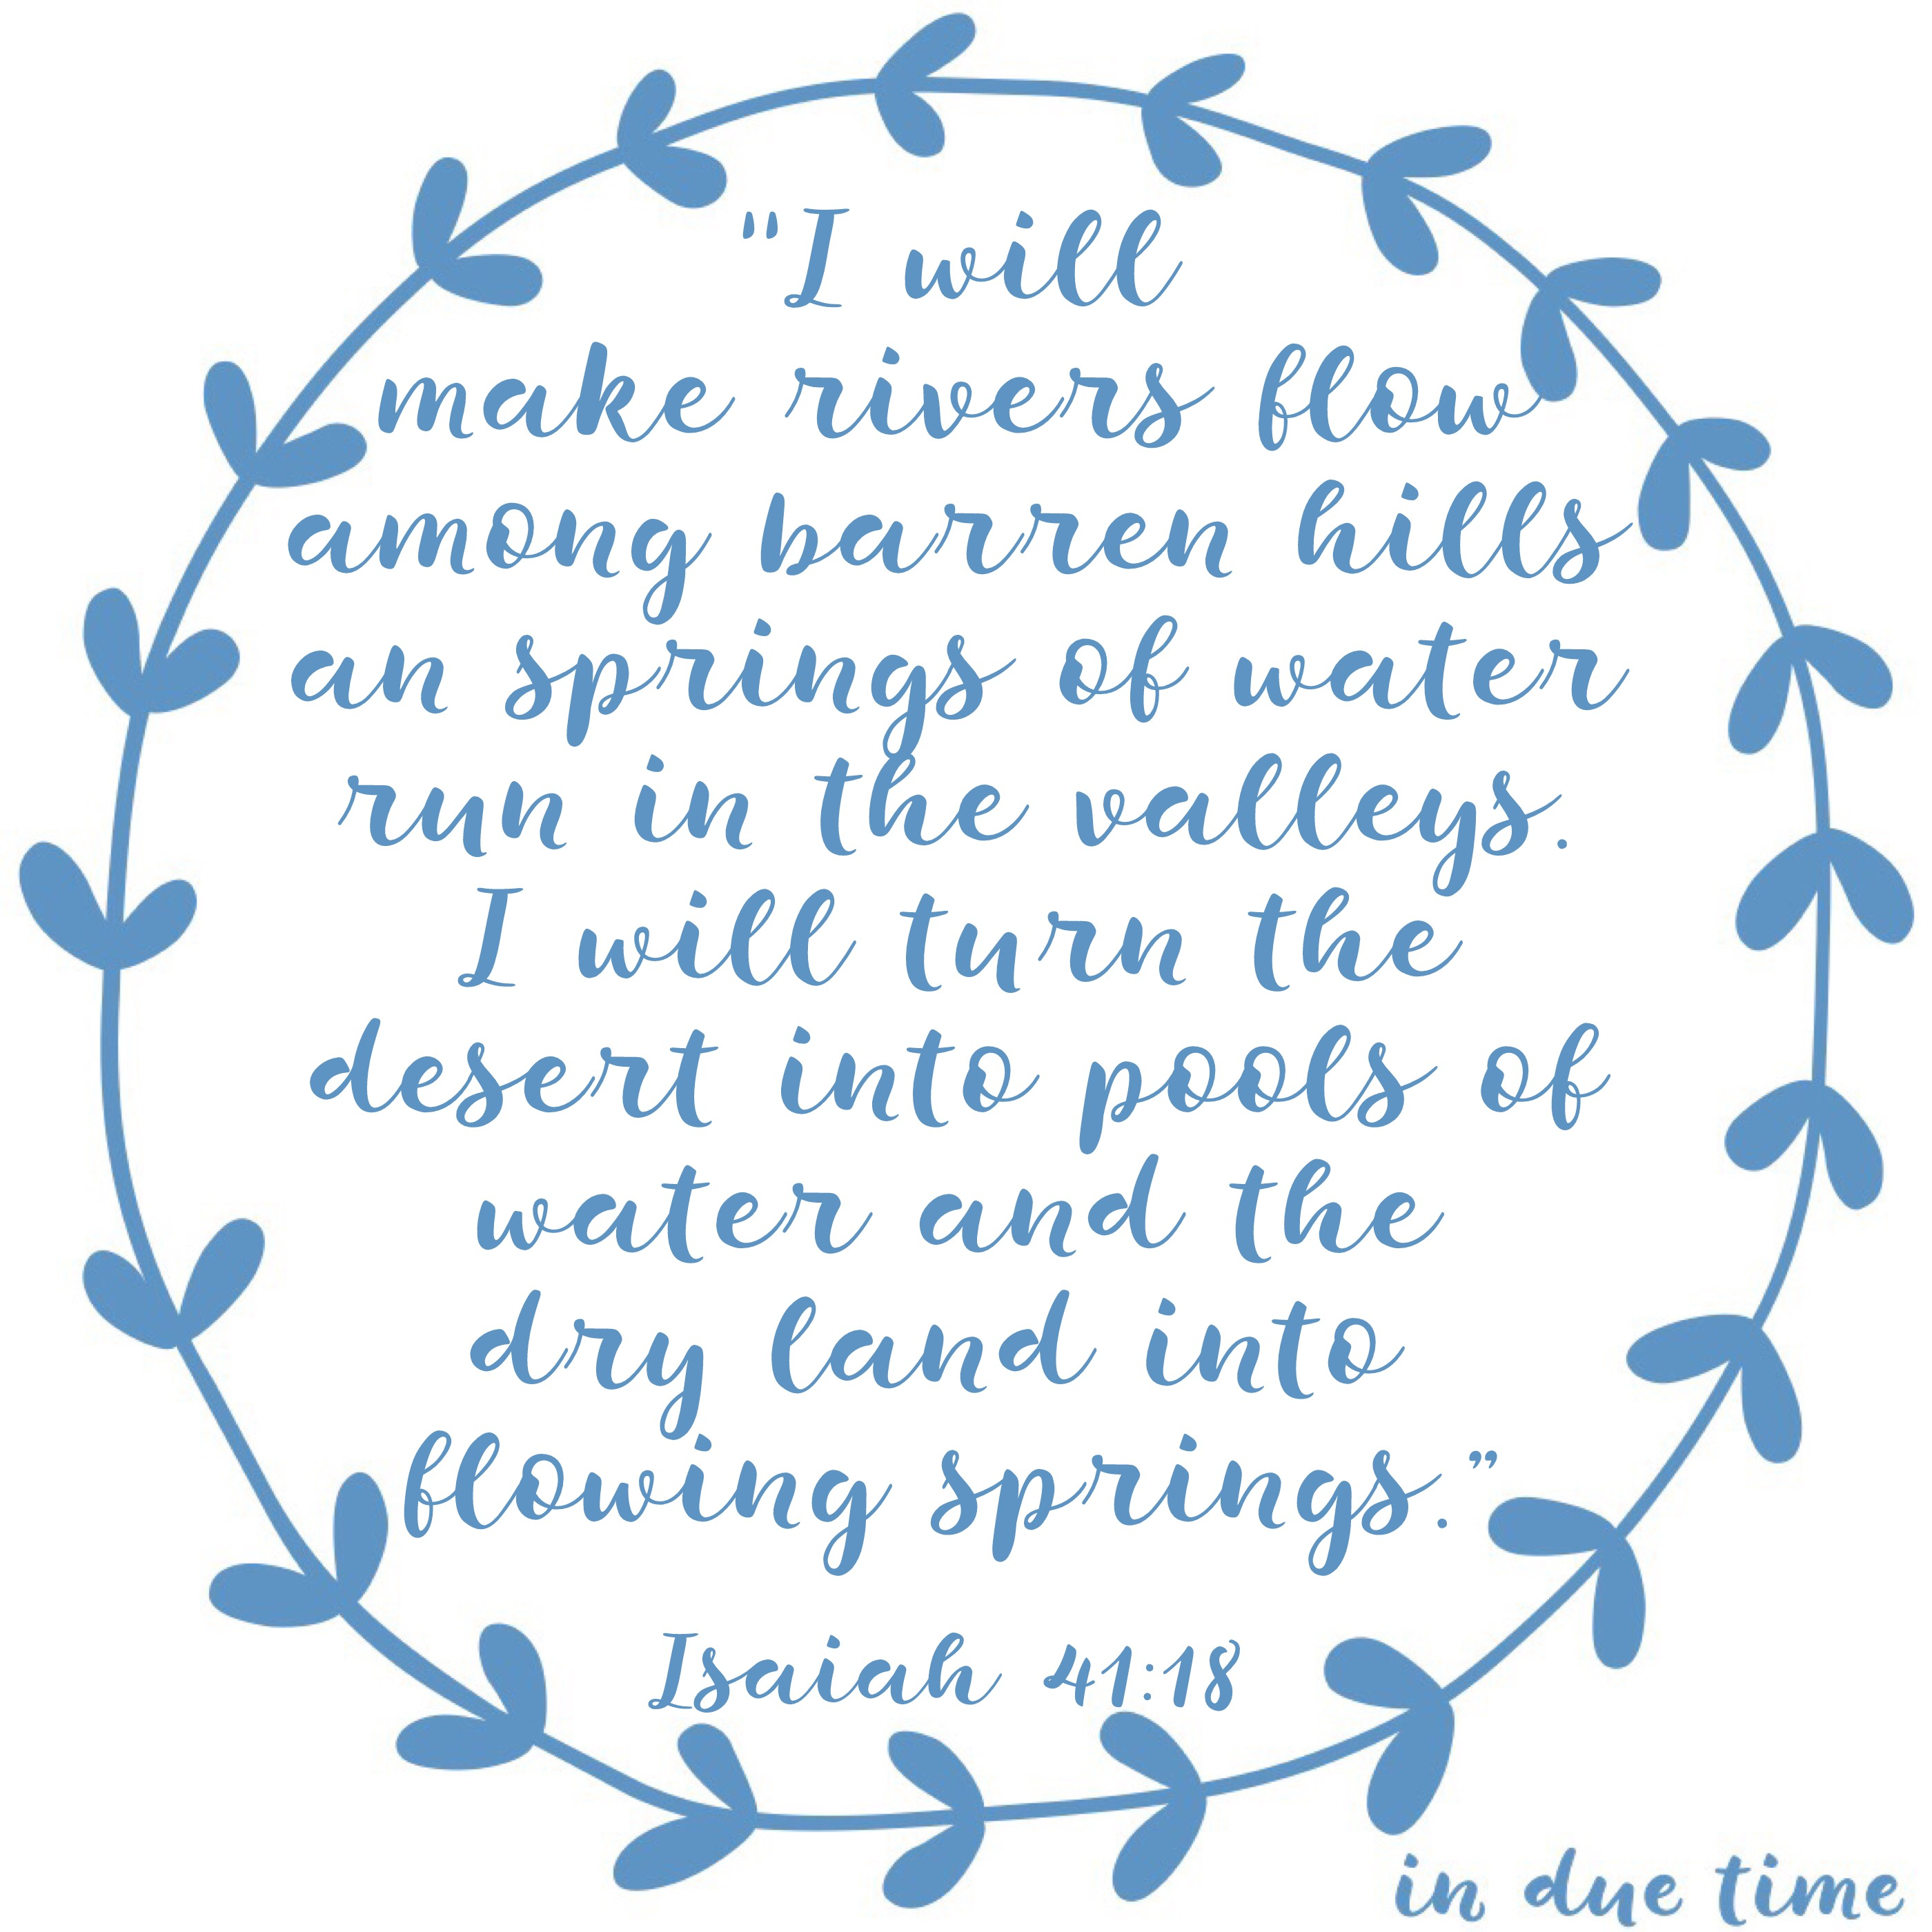 Isaiah 41 - barrenness to pools of water